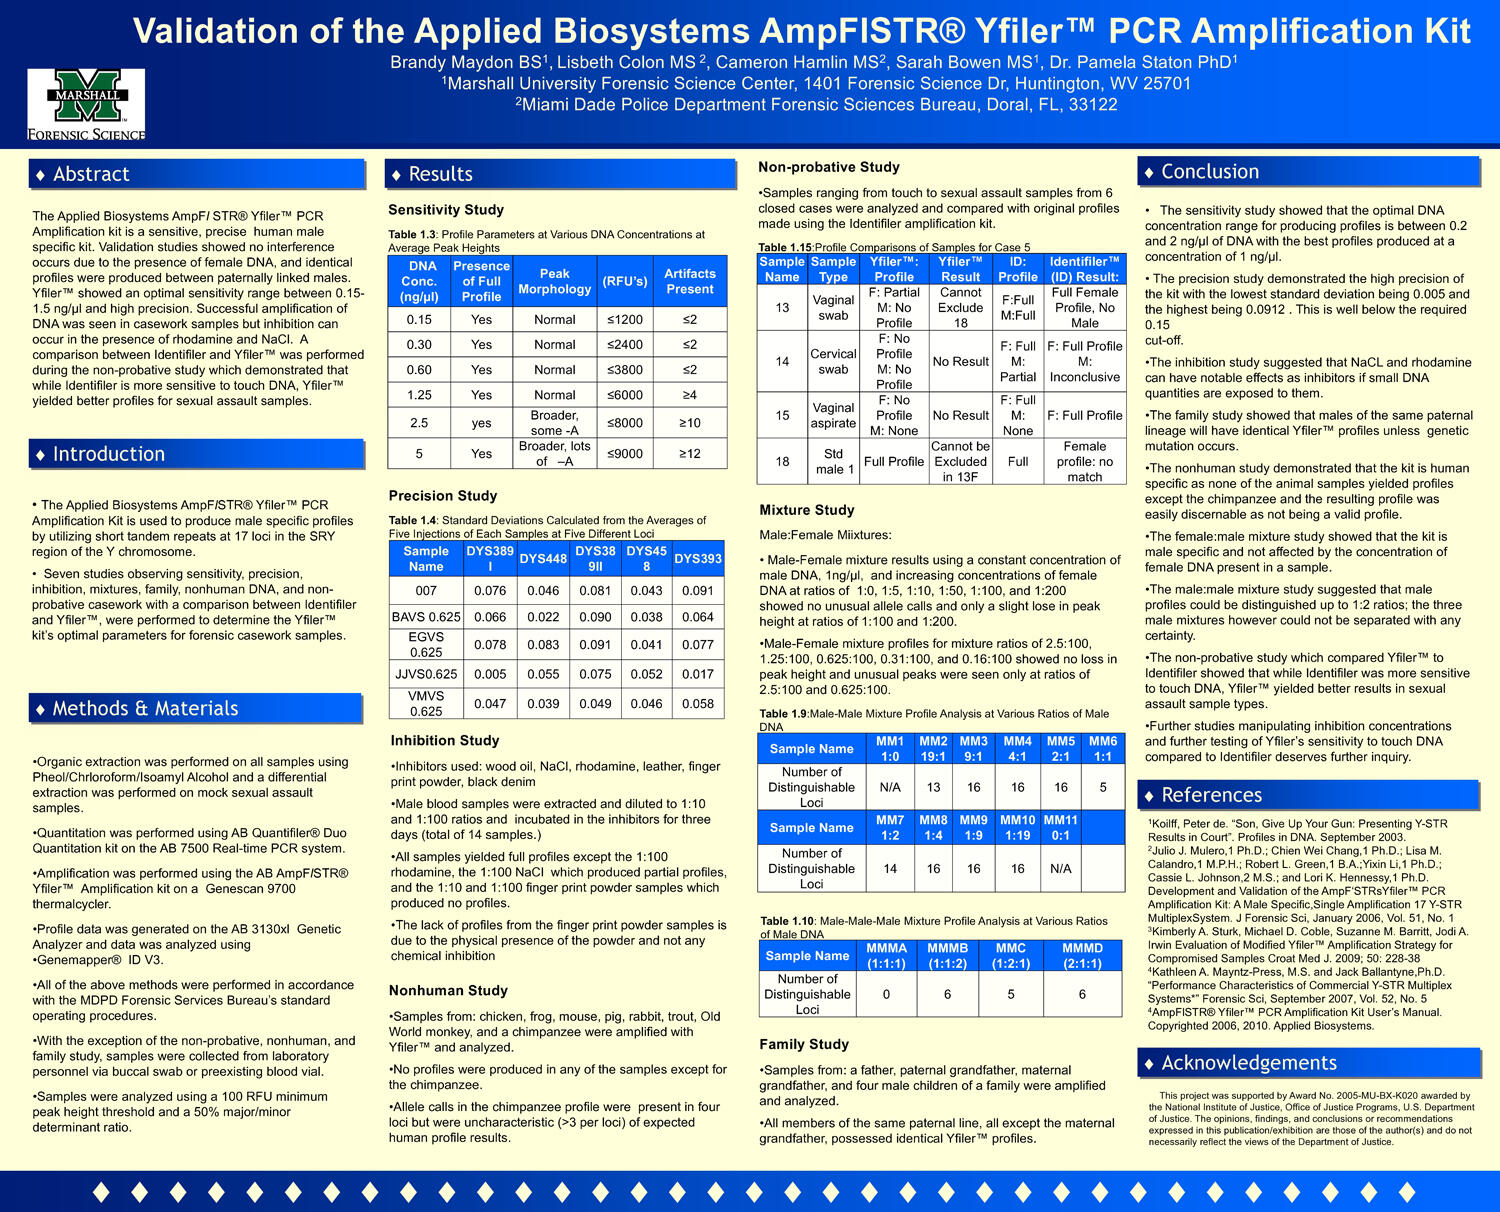 Validation of the Applied Biosystems AmpFlSTR® Yfiler™ PCR Amplification Kit